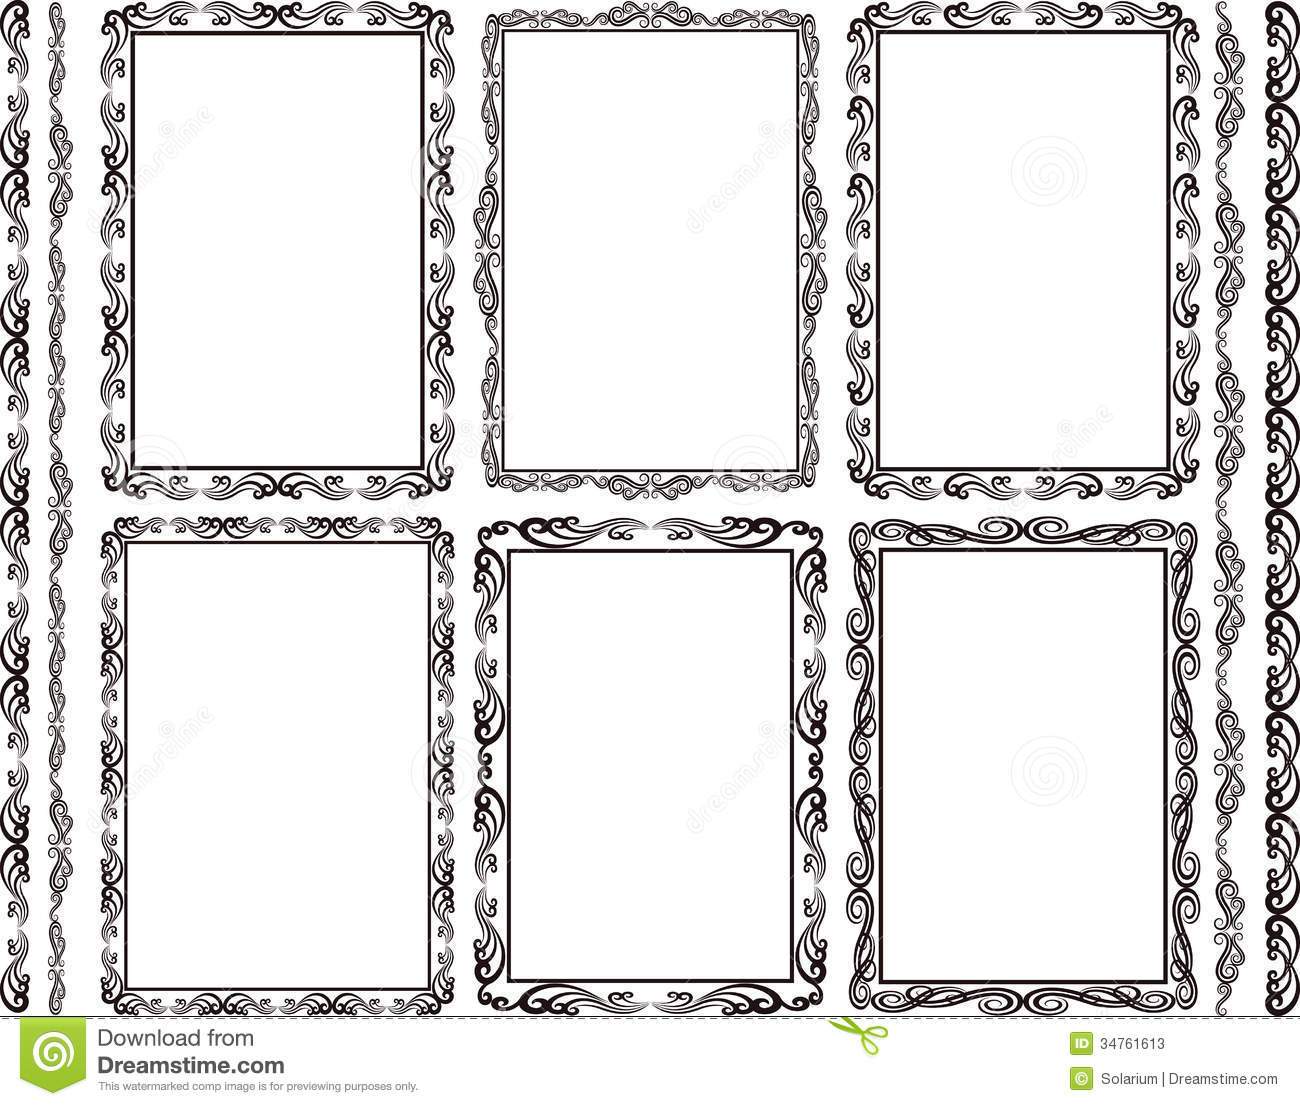 Frames rectangular stock vector. Illustration of ornament - 34761613